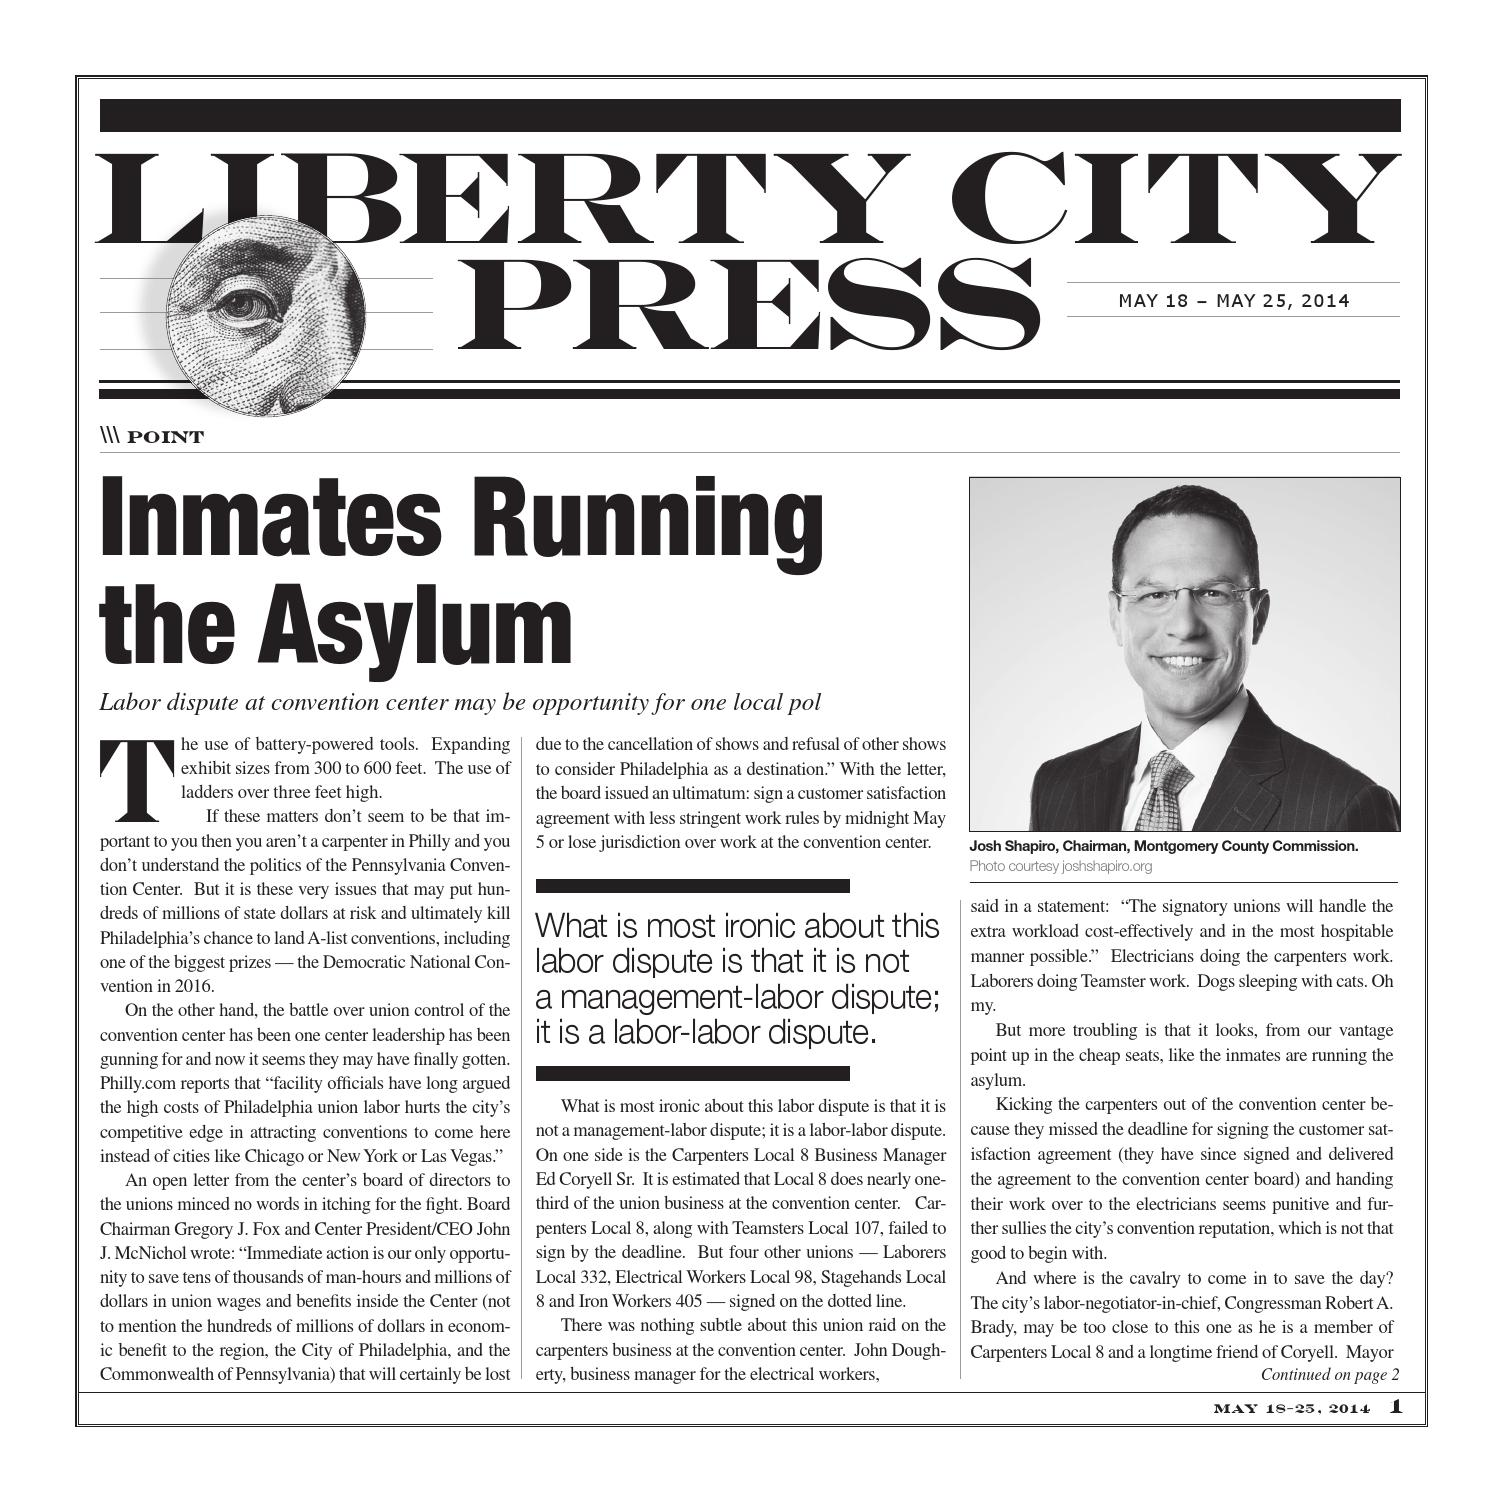 Liberty City Press Issue for May 18th-25th 2014 by Liberty